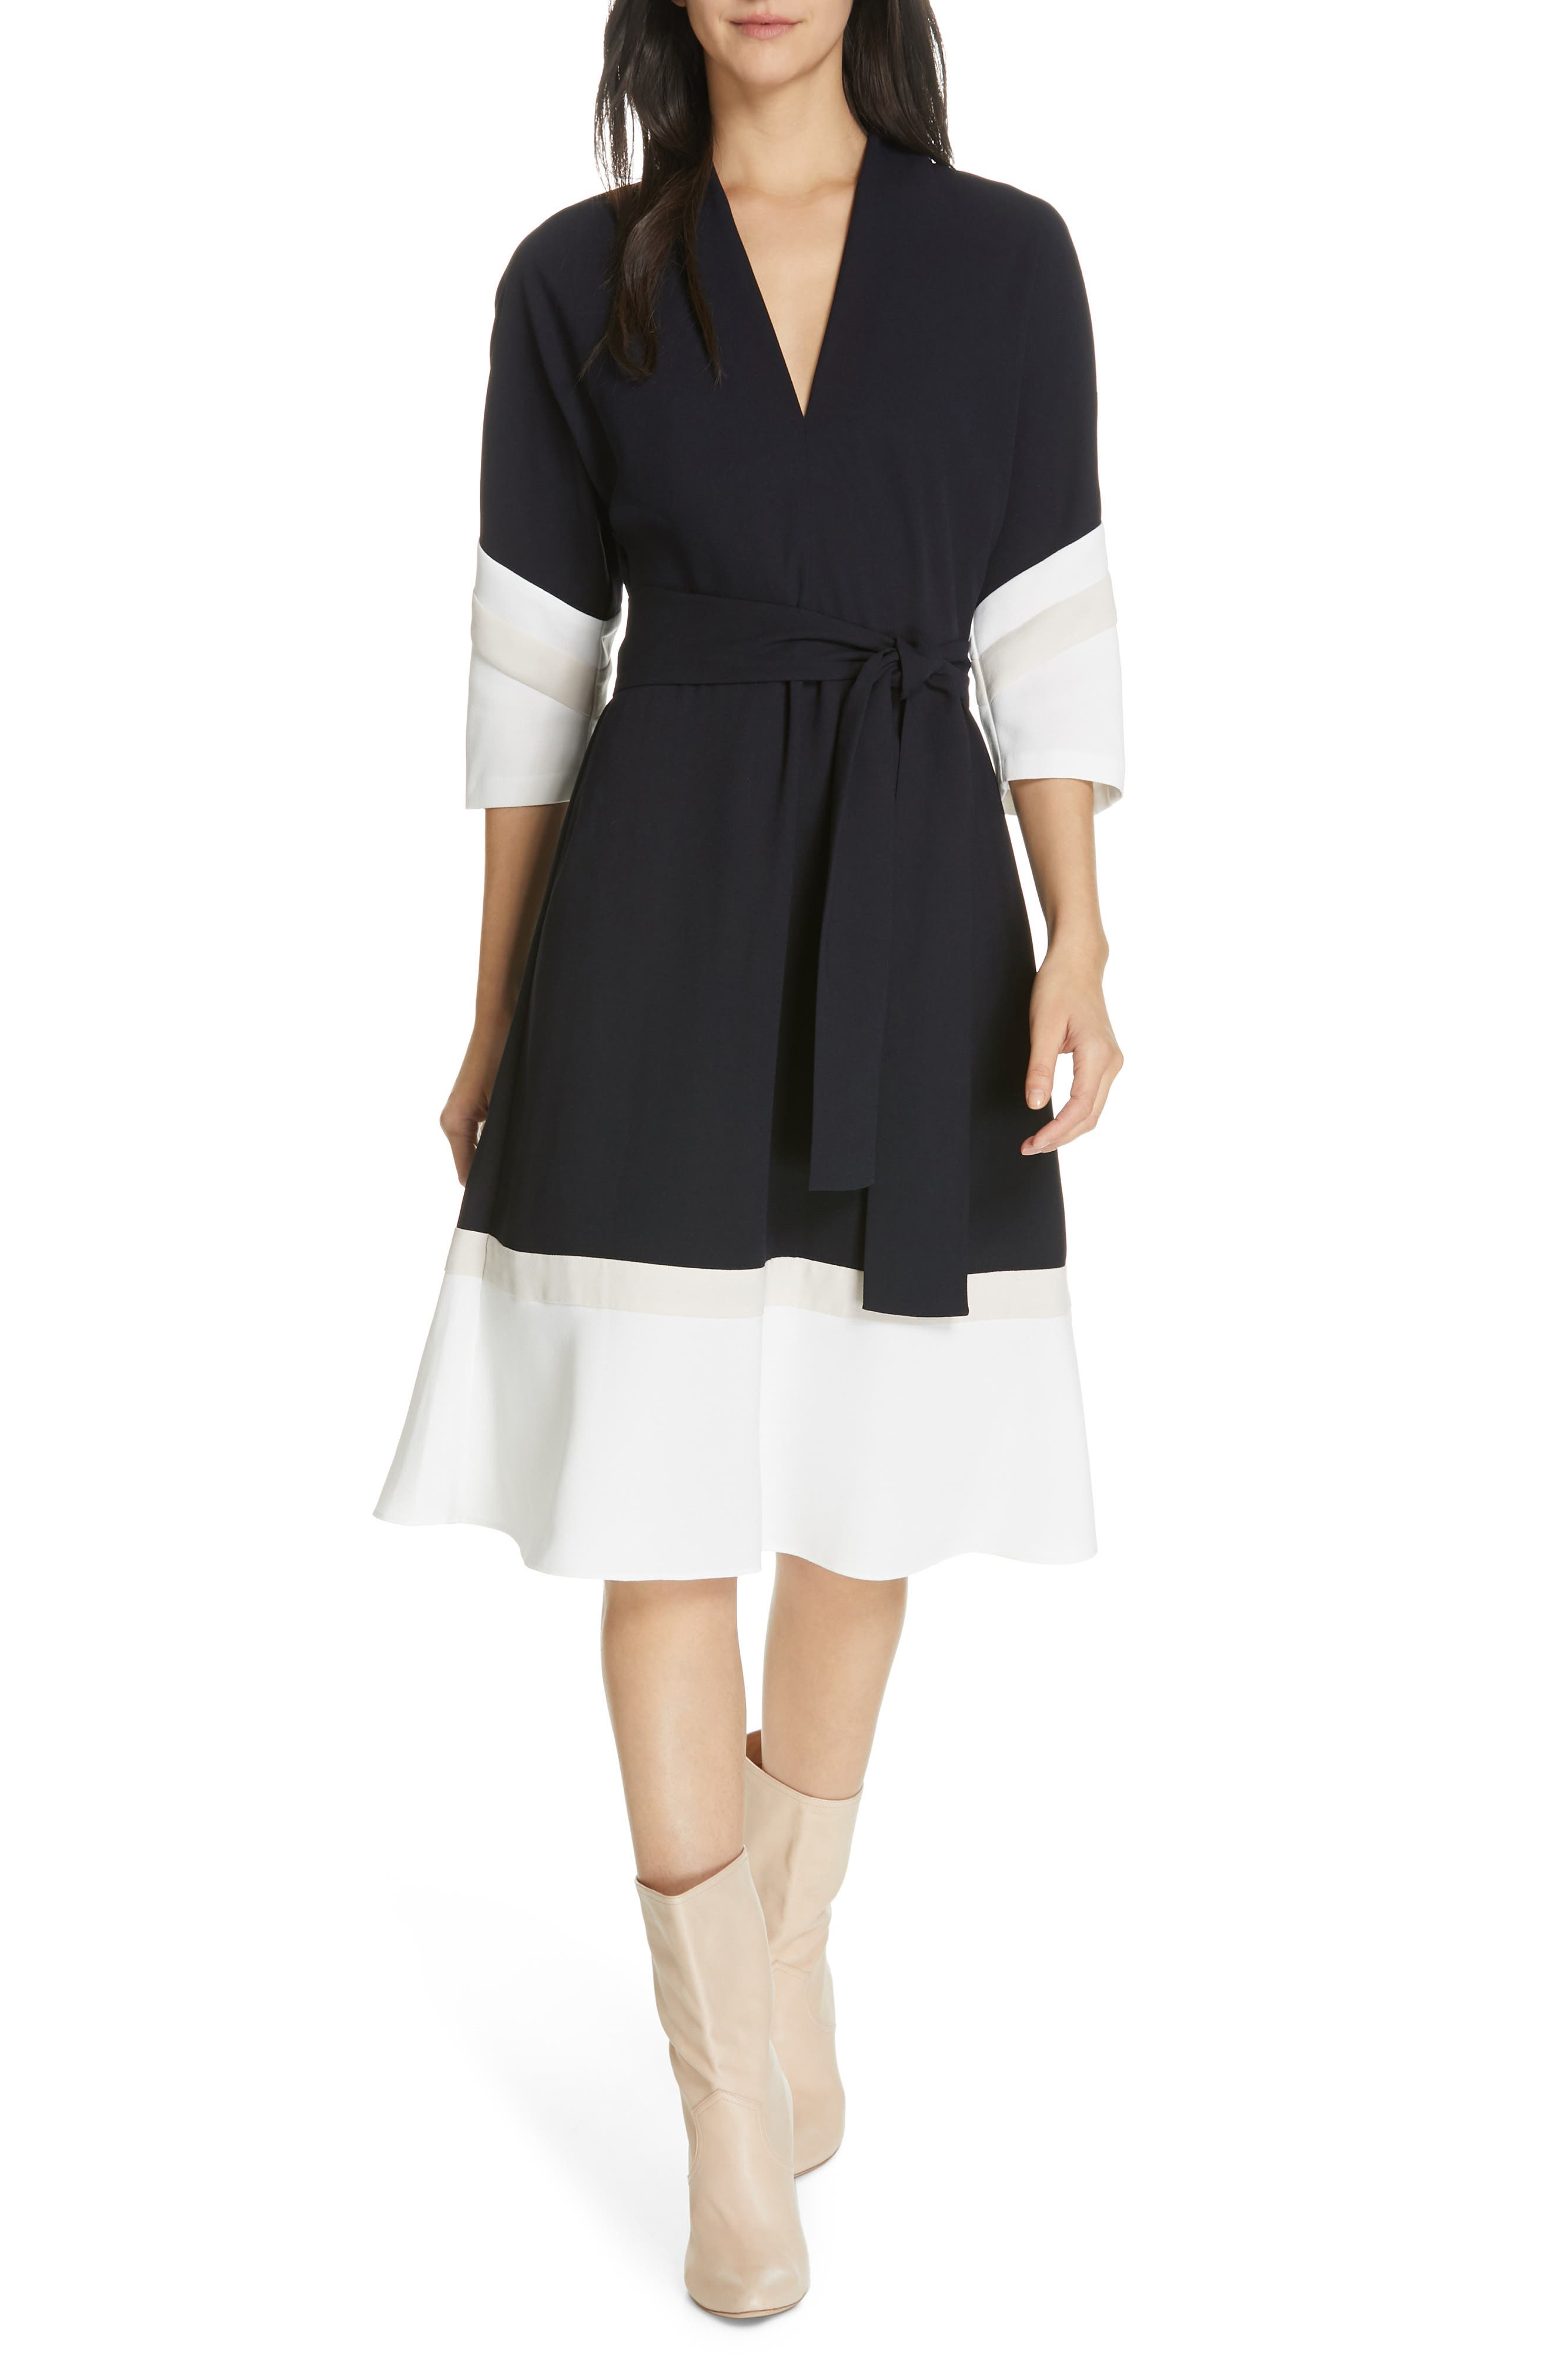 Joie Aydrien Colorblock Dress, White